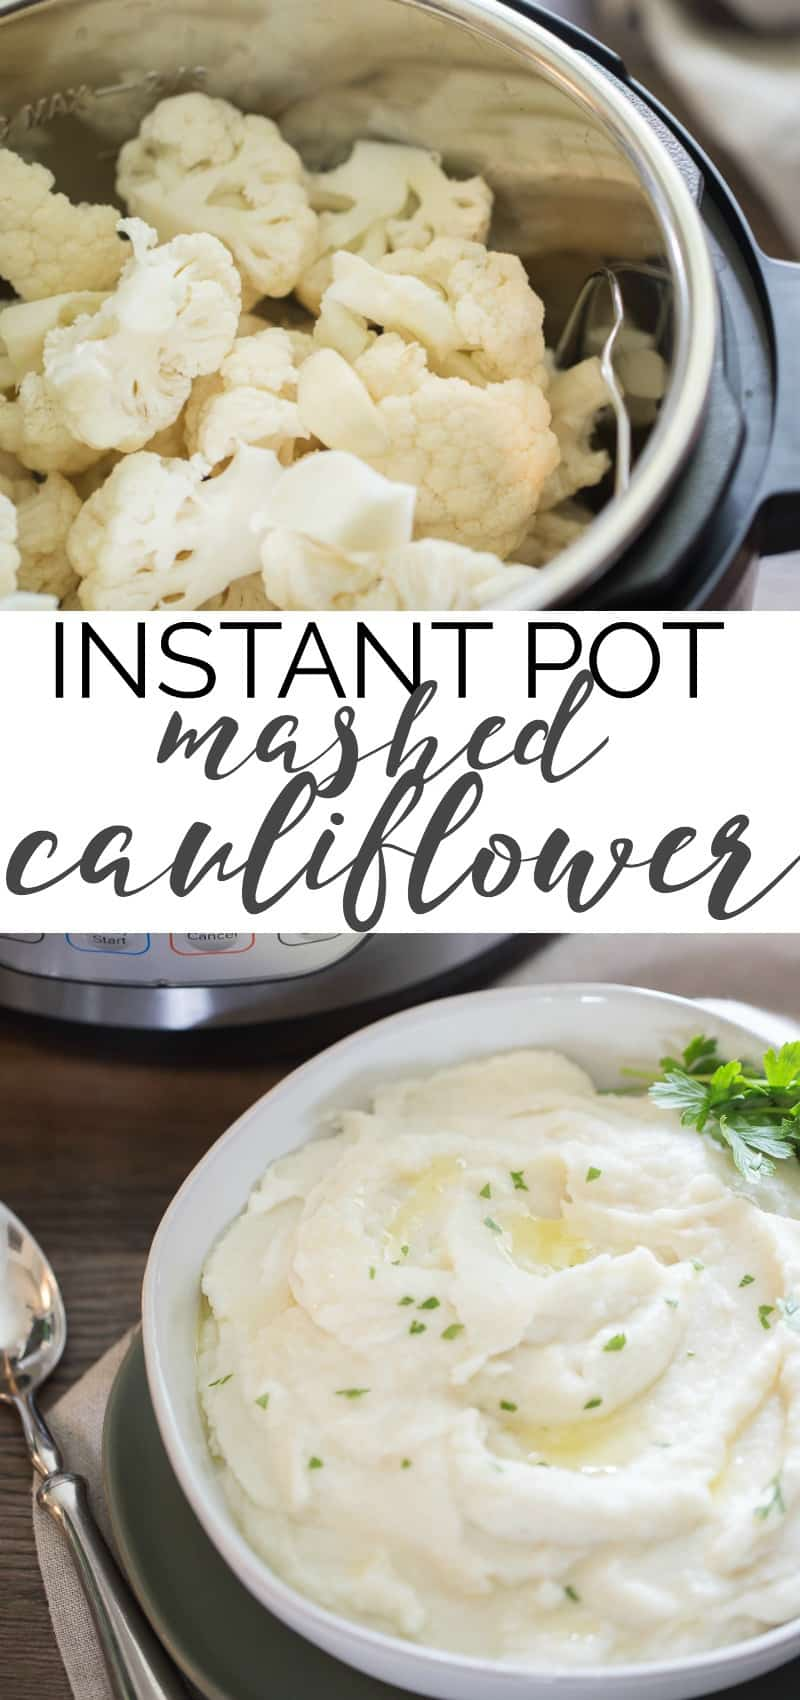 instant pot mashed cauliflower recipe pin